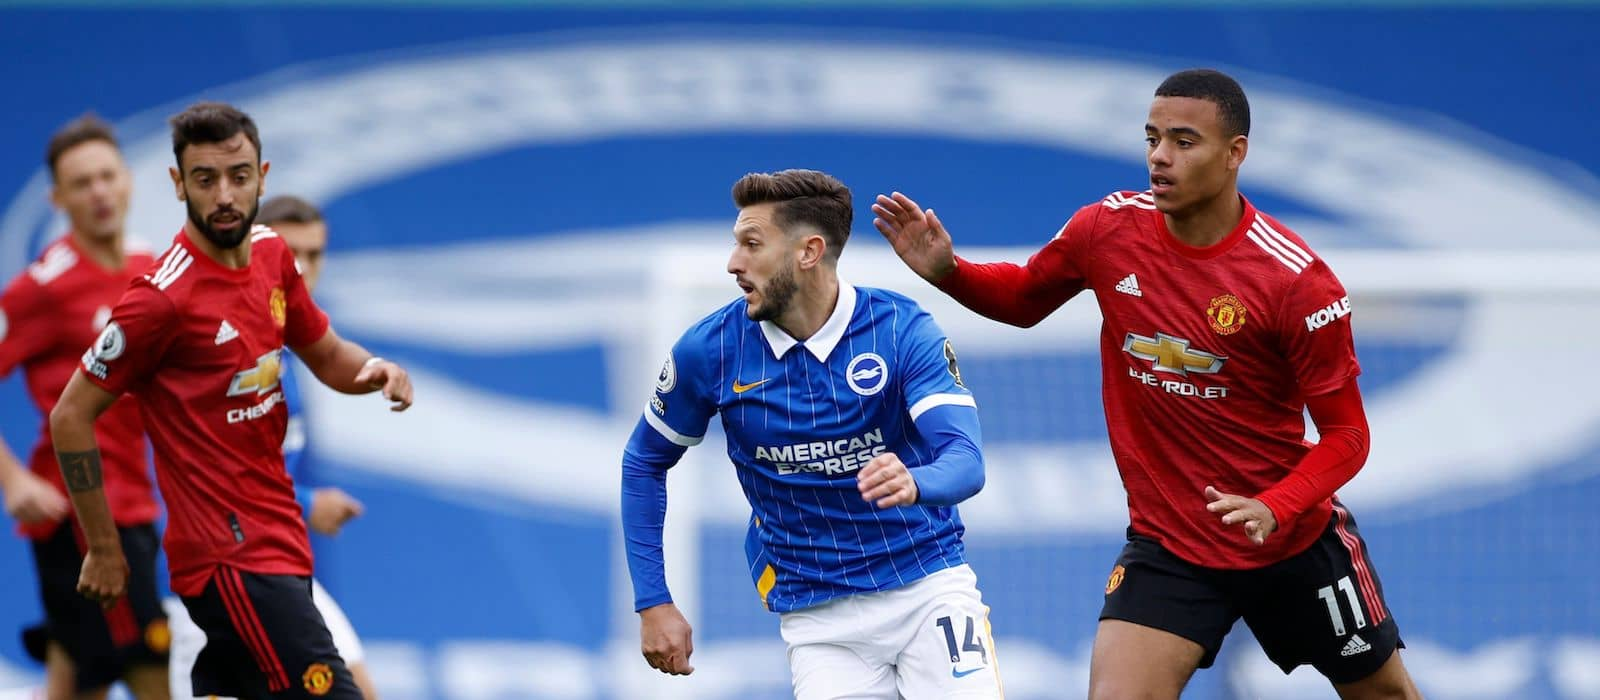 Player ratings: Brighton 2-3 Manchester United – Lucky United get off the mark